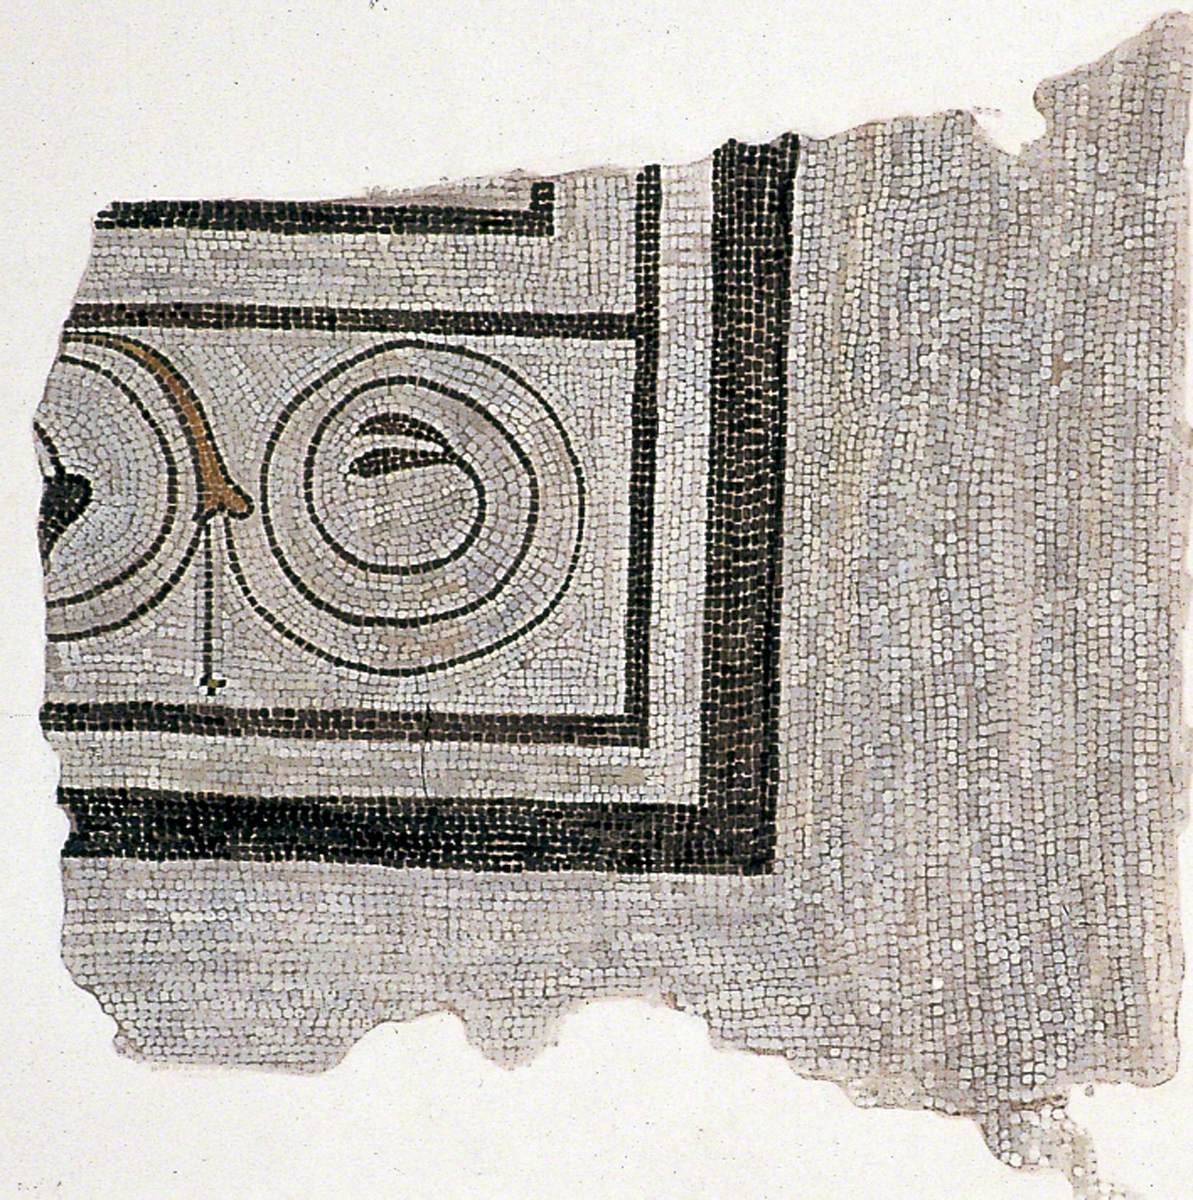 Spiral Vine Tendril Border on Late First Century Mosaic